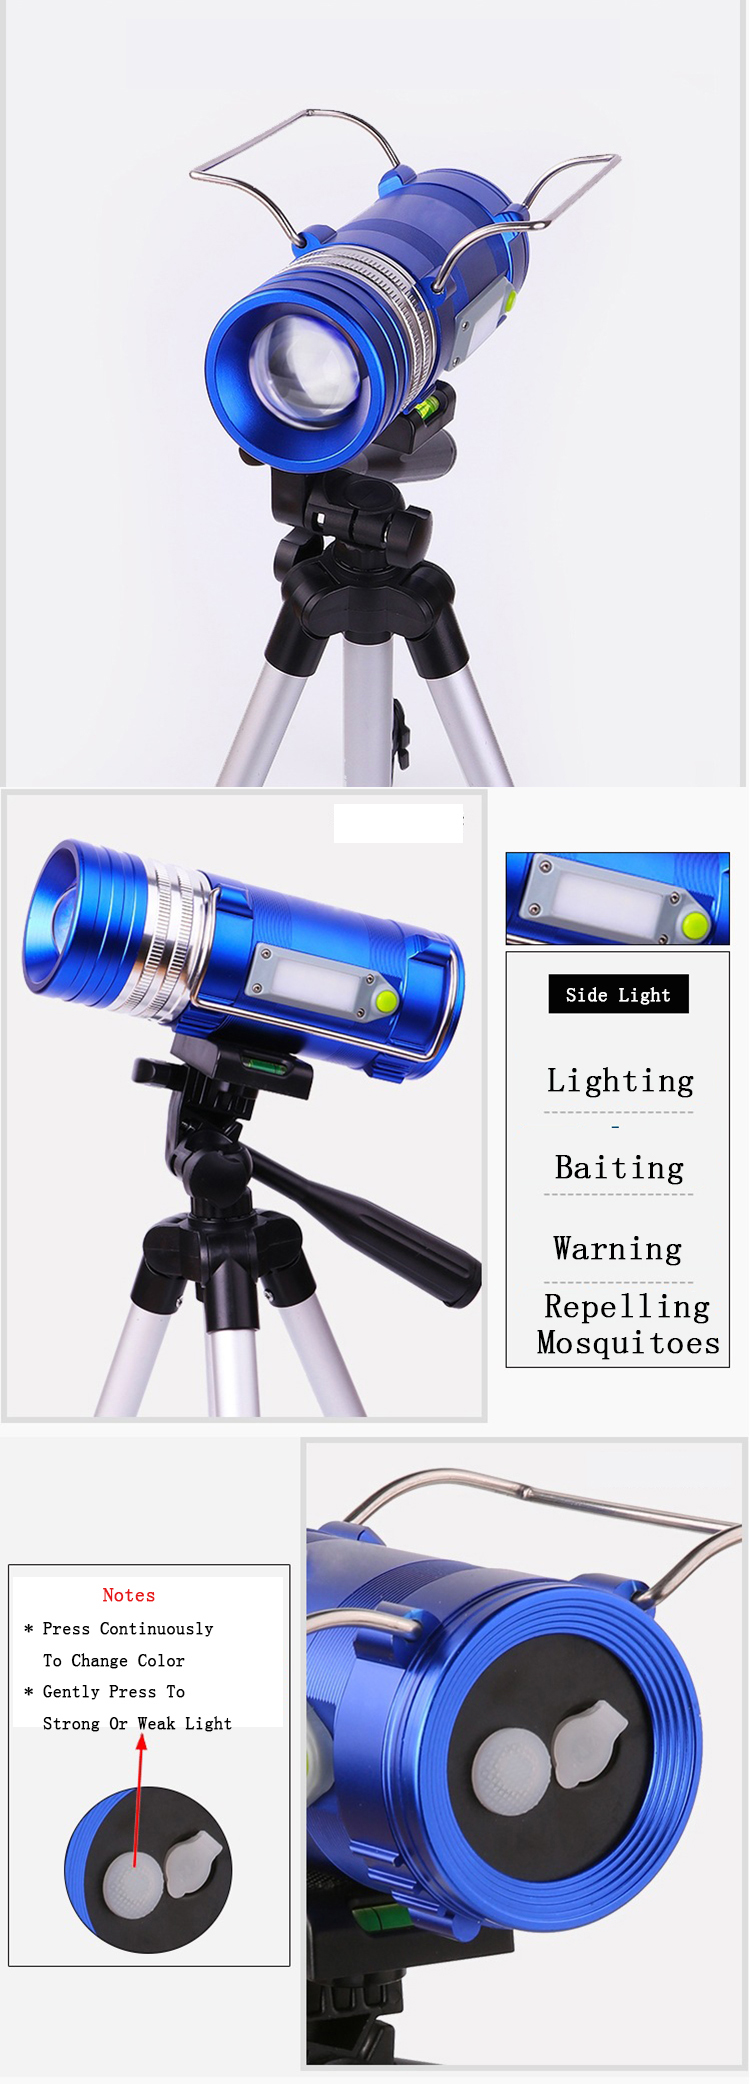 XANES 450LM 3 Color LEDs 500M Range Zoomable Rechargeable LED Fishing Flashlight Lamp With Charger